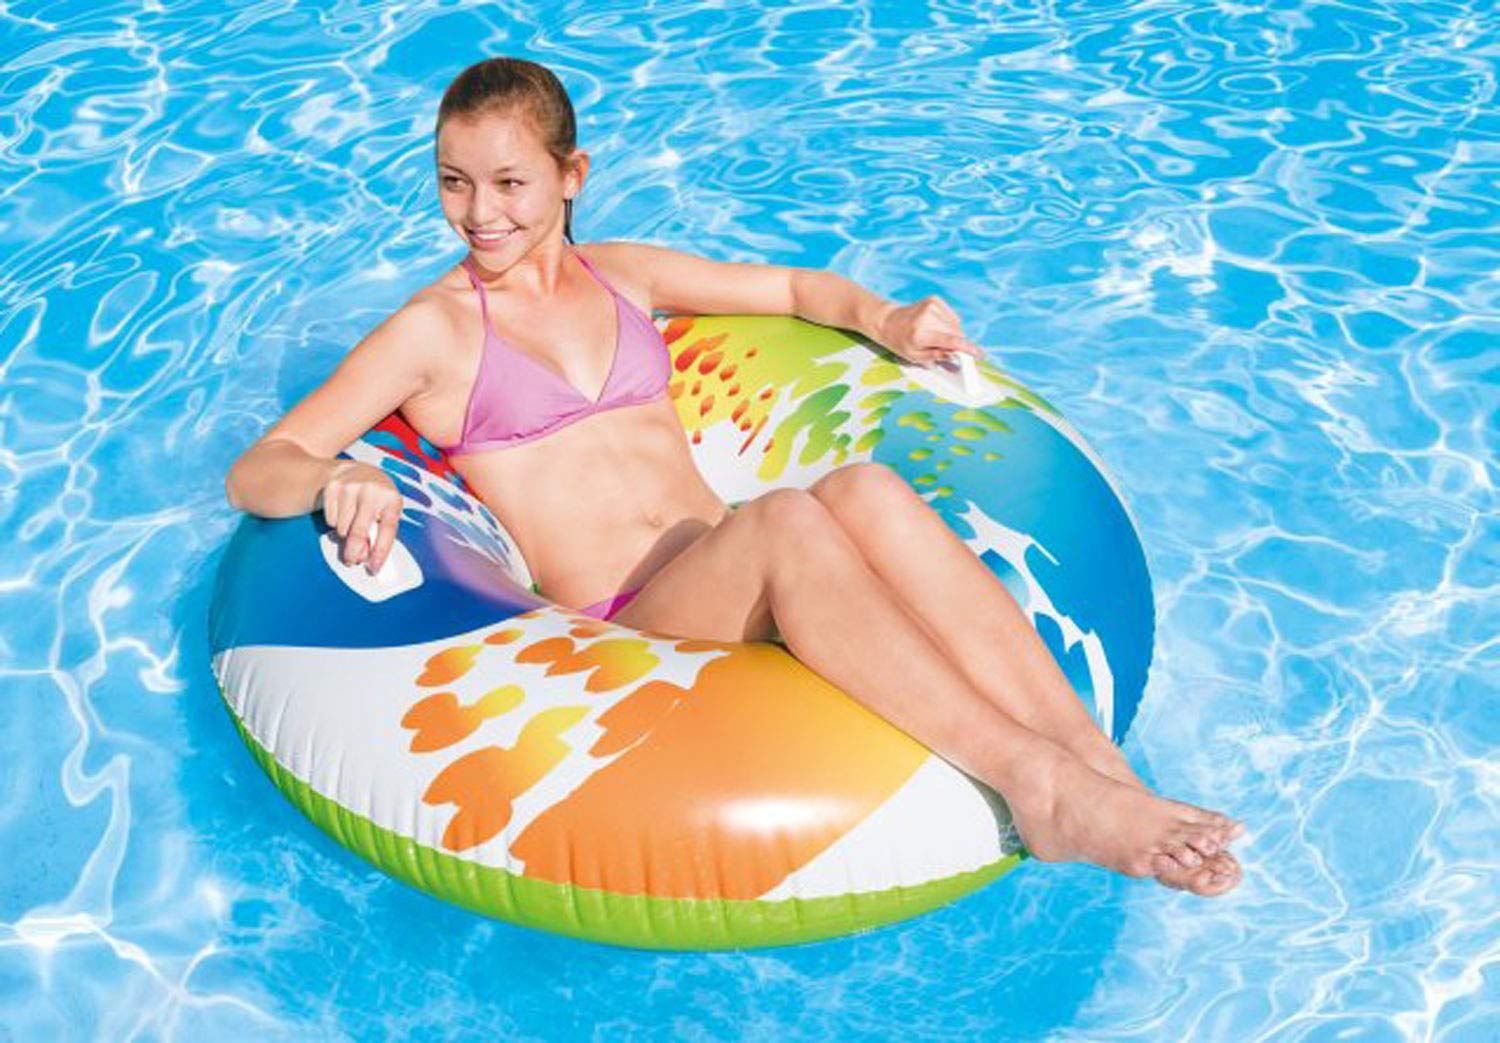 Intex Inflatable 47'' Color Whirl Tube Swimming Pool Raft with Handles (8 Pack) by Intex (Image #4)